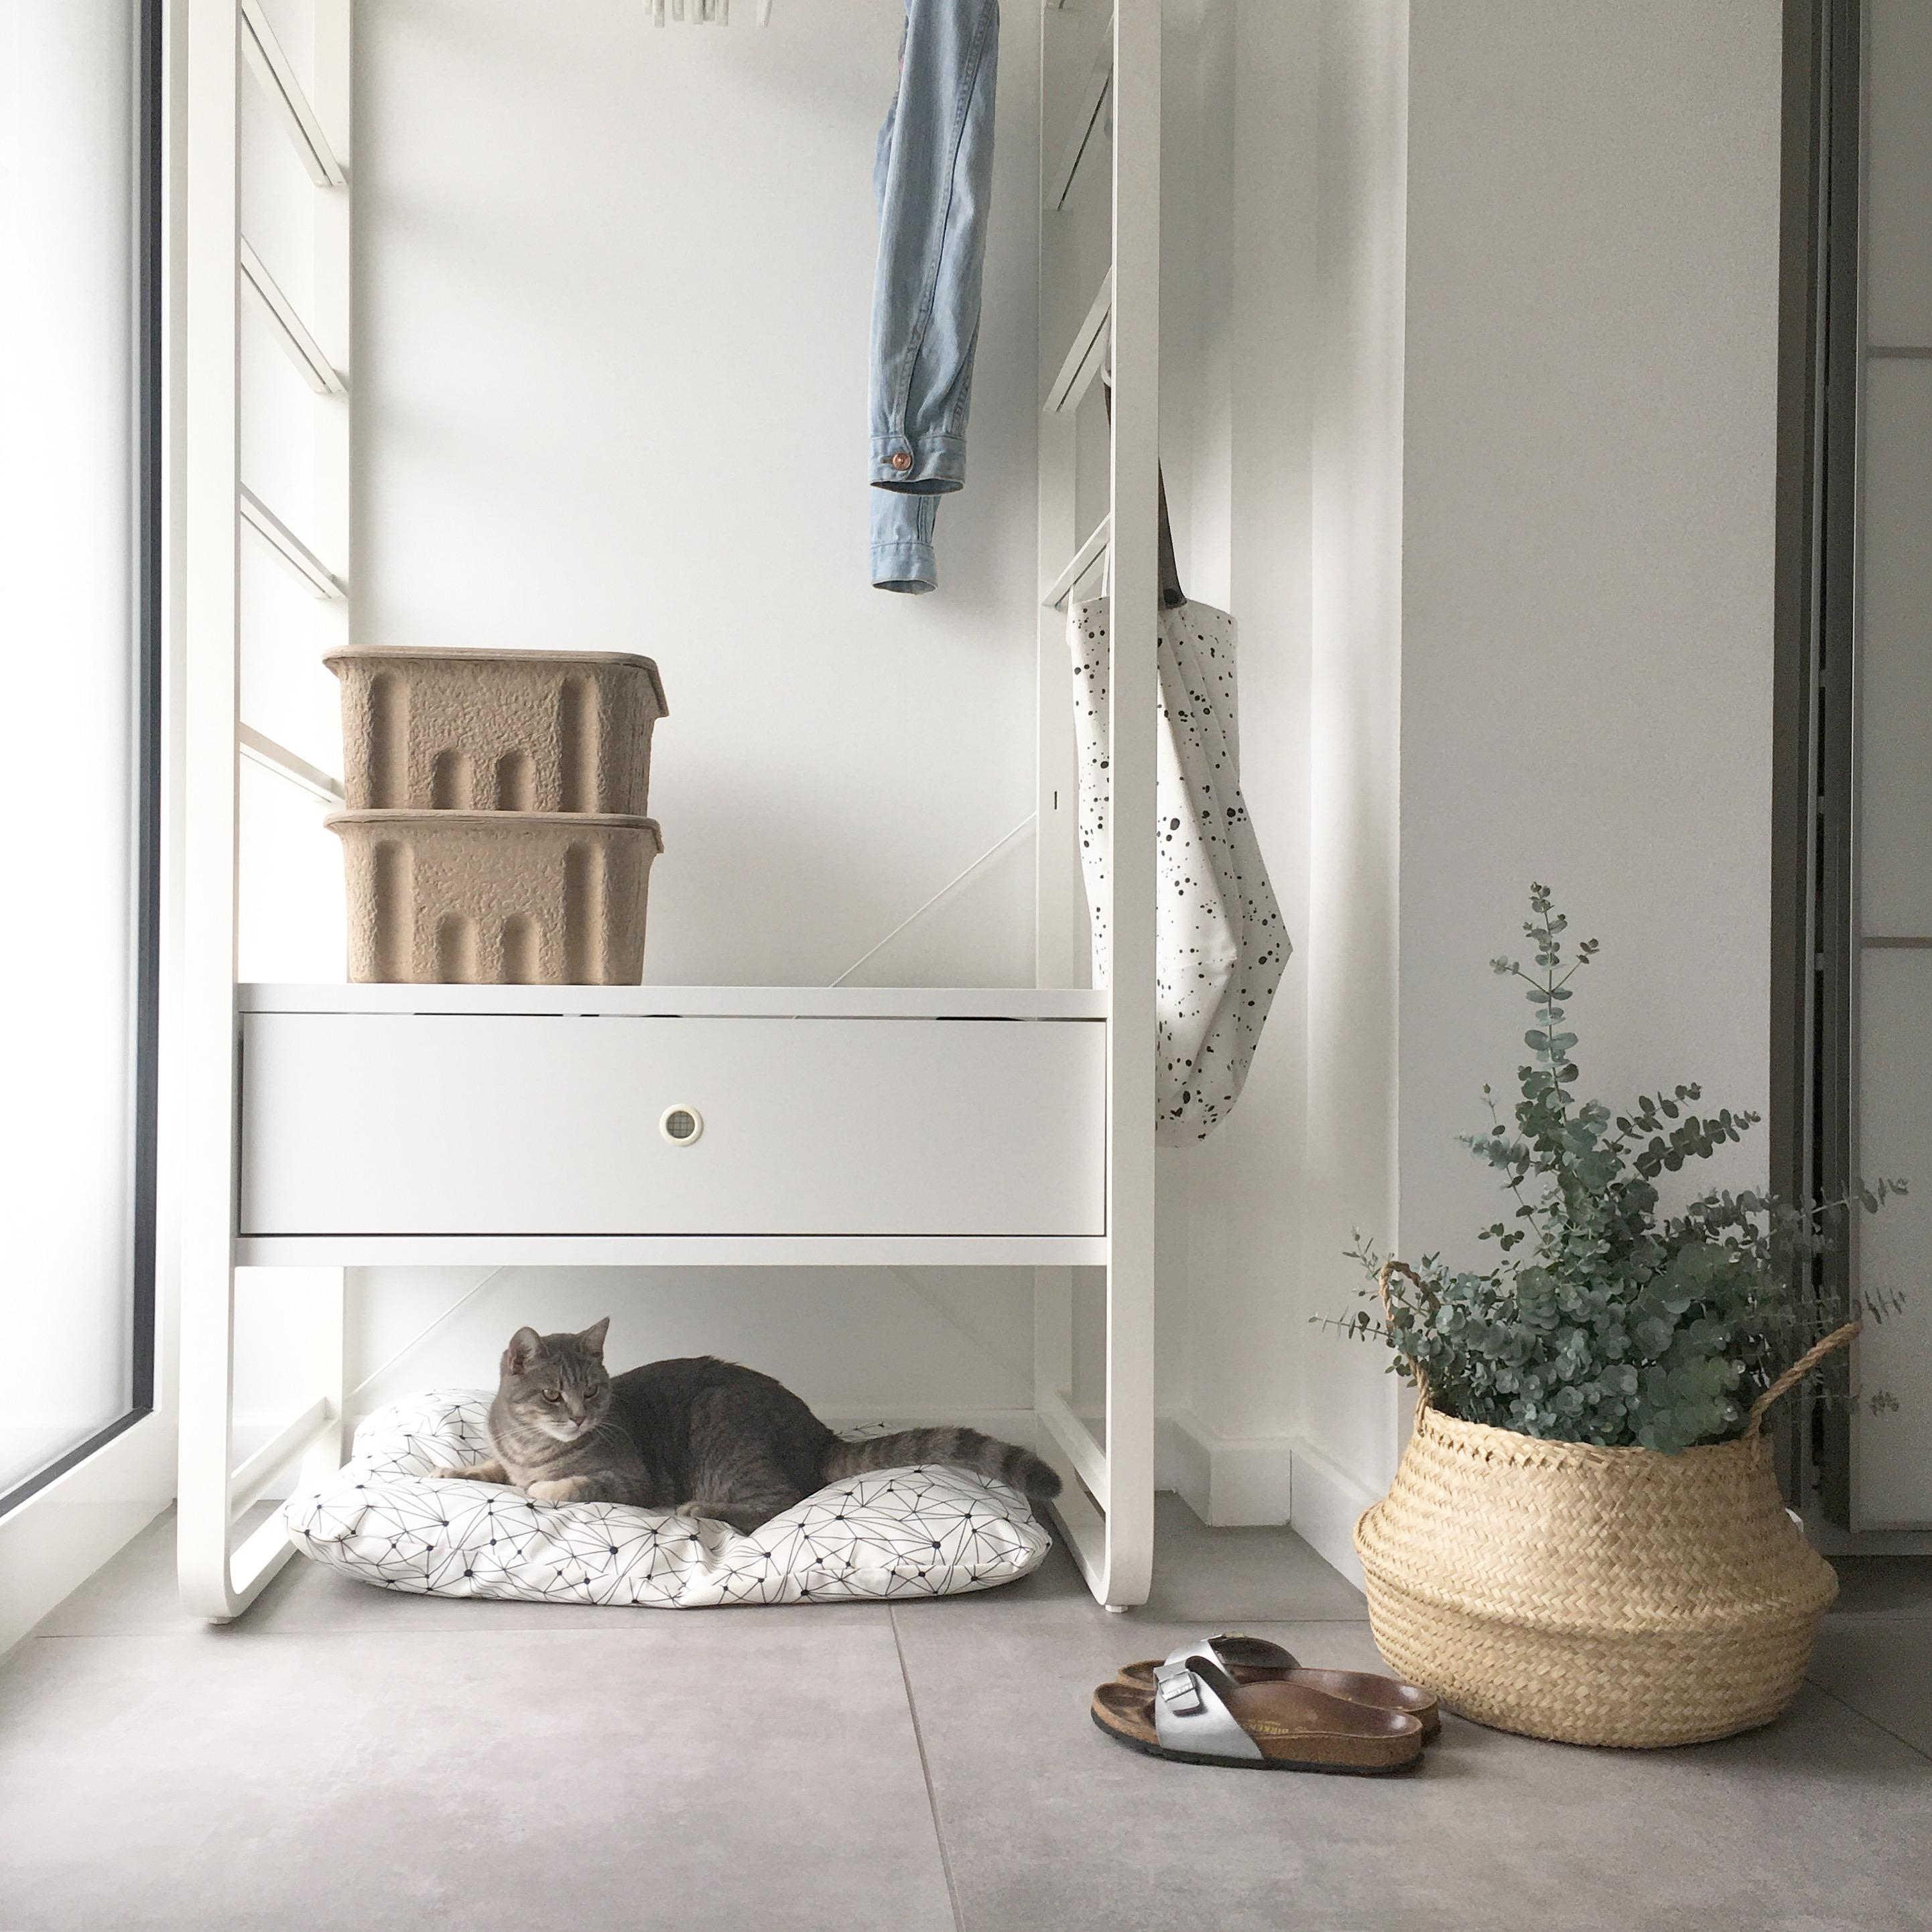 #meinskandistyle #mynordicroom 